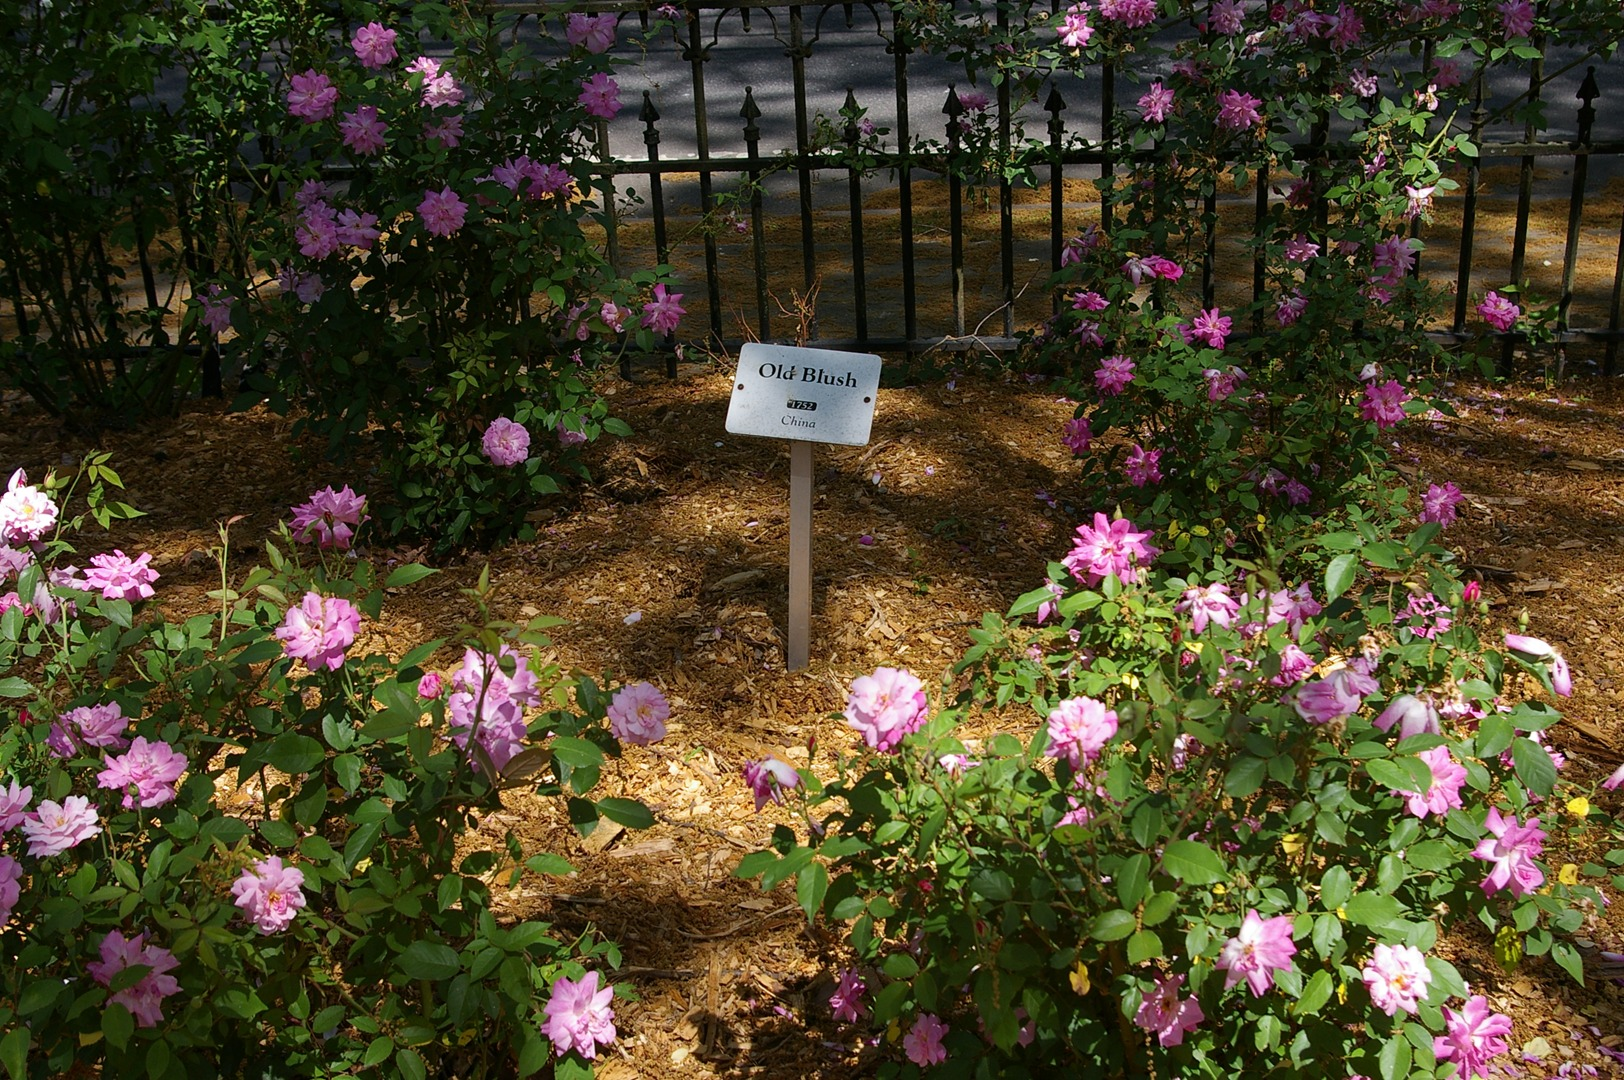 Rose Lawn has been honored as a Historic Garden of Georgia featuring ...